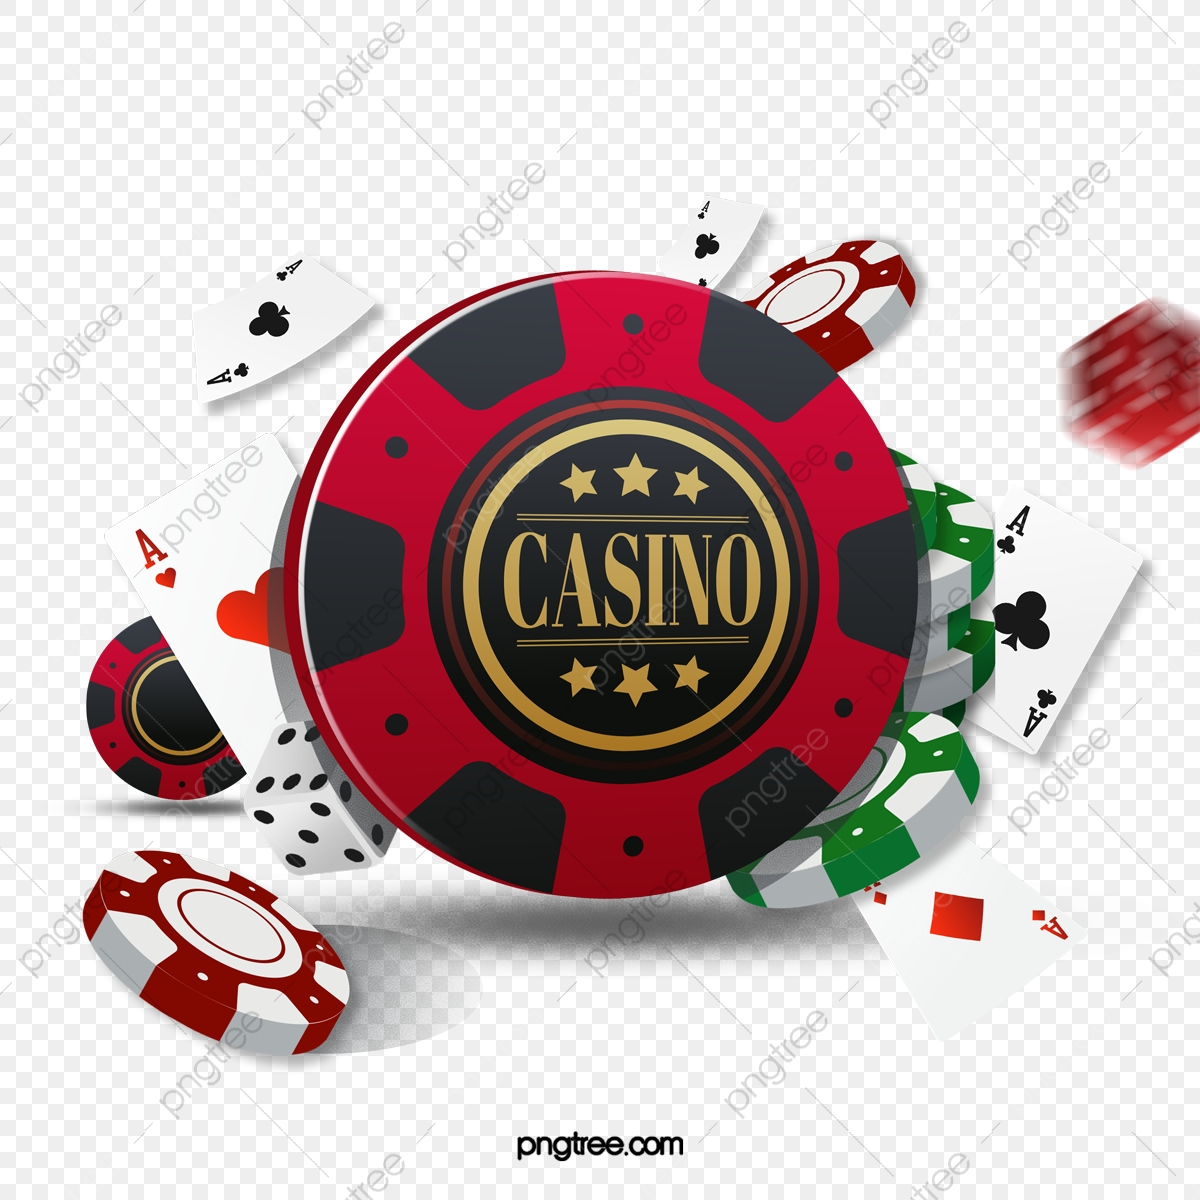 Casino PNG Images | Vector and PSD Files | Free Download on Pngtree